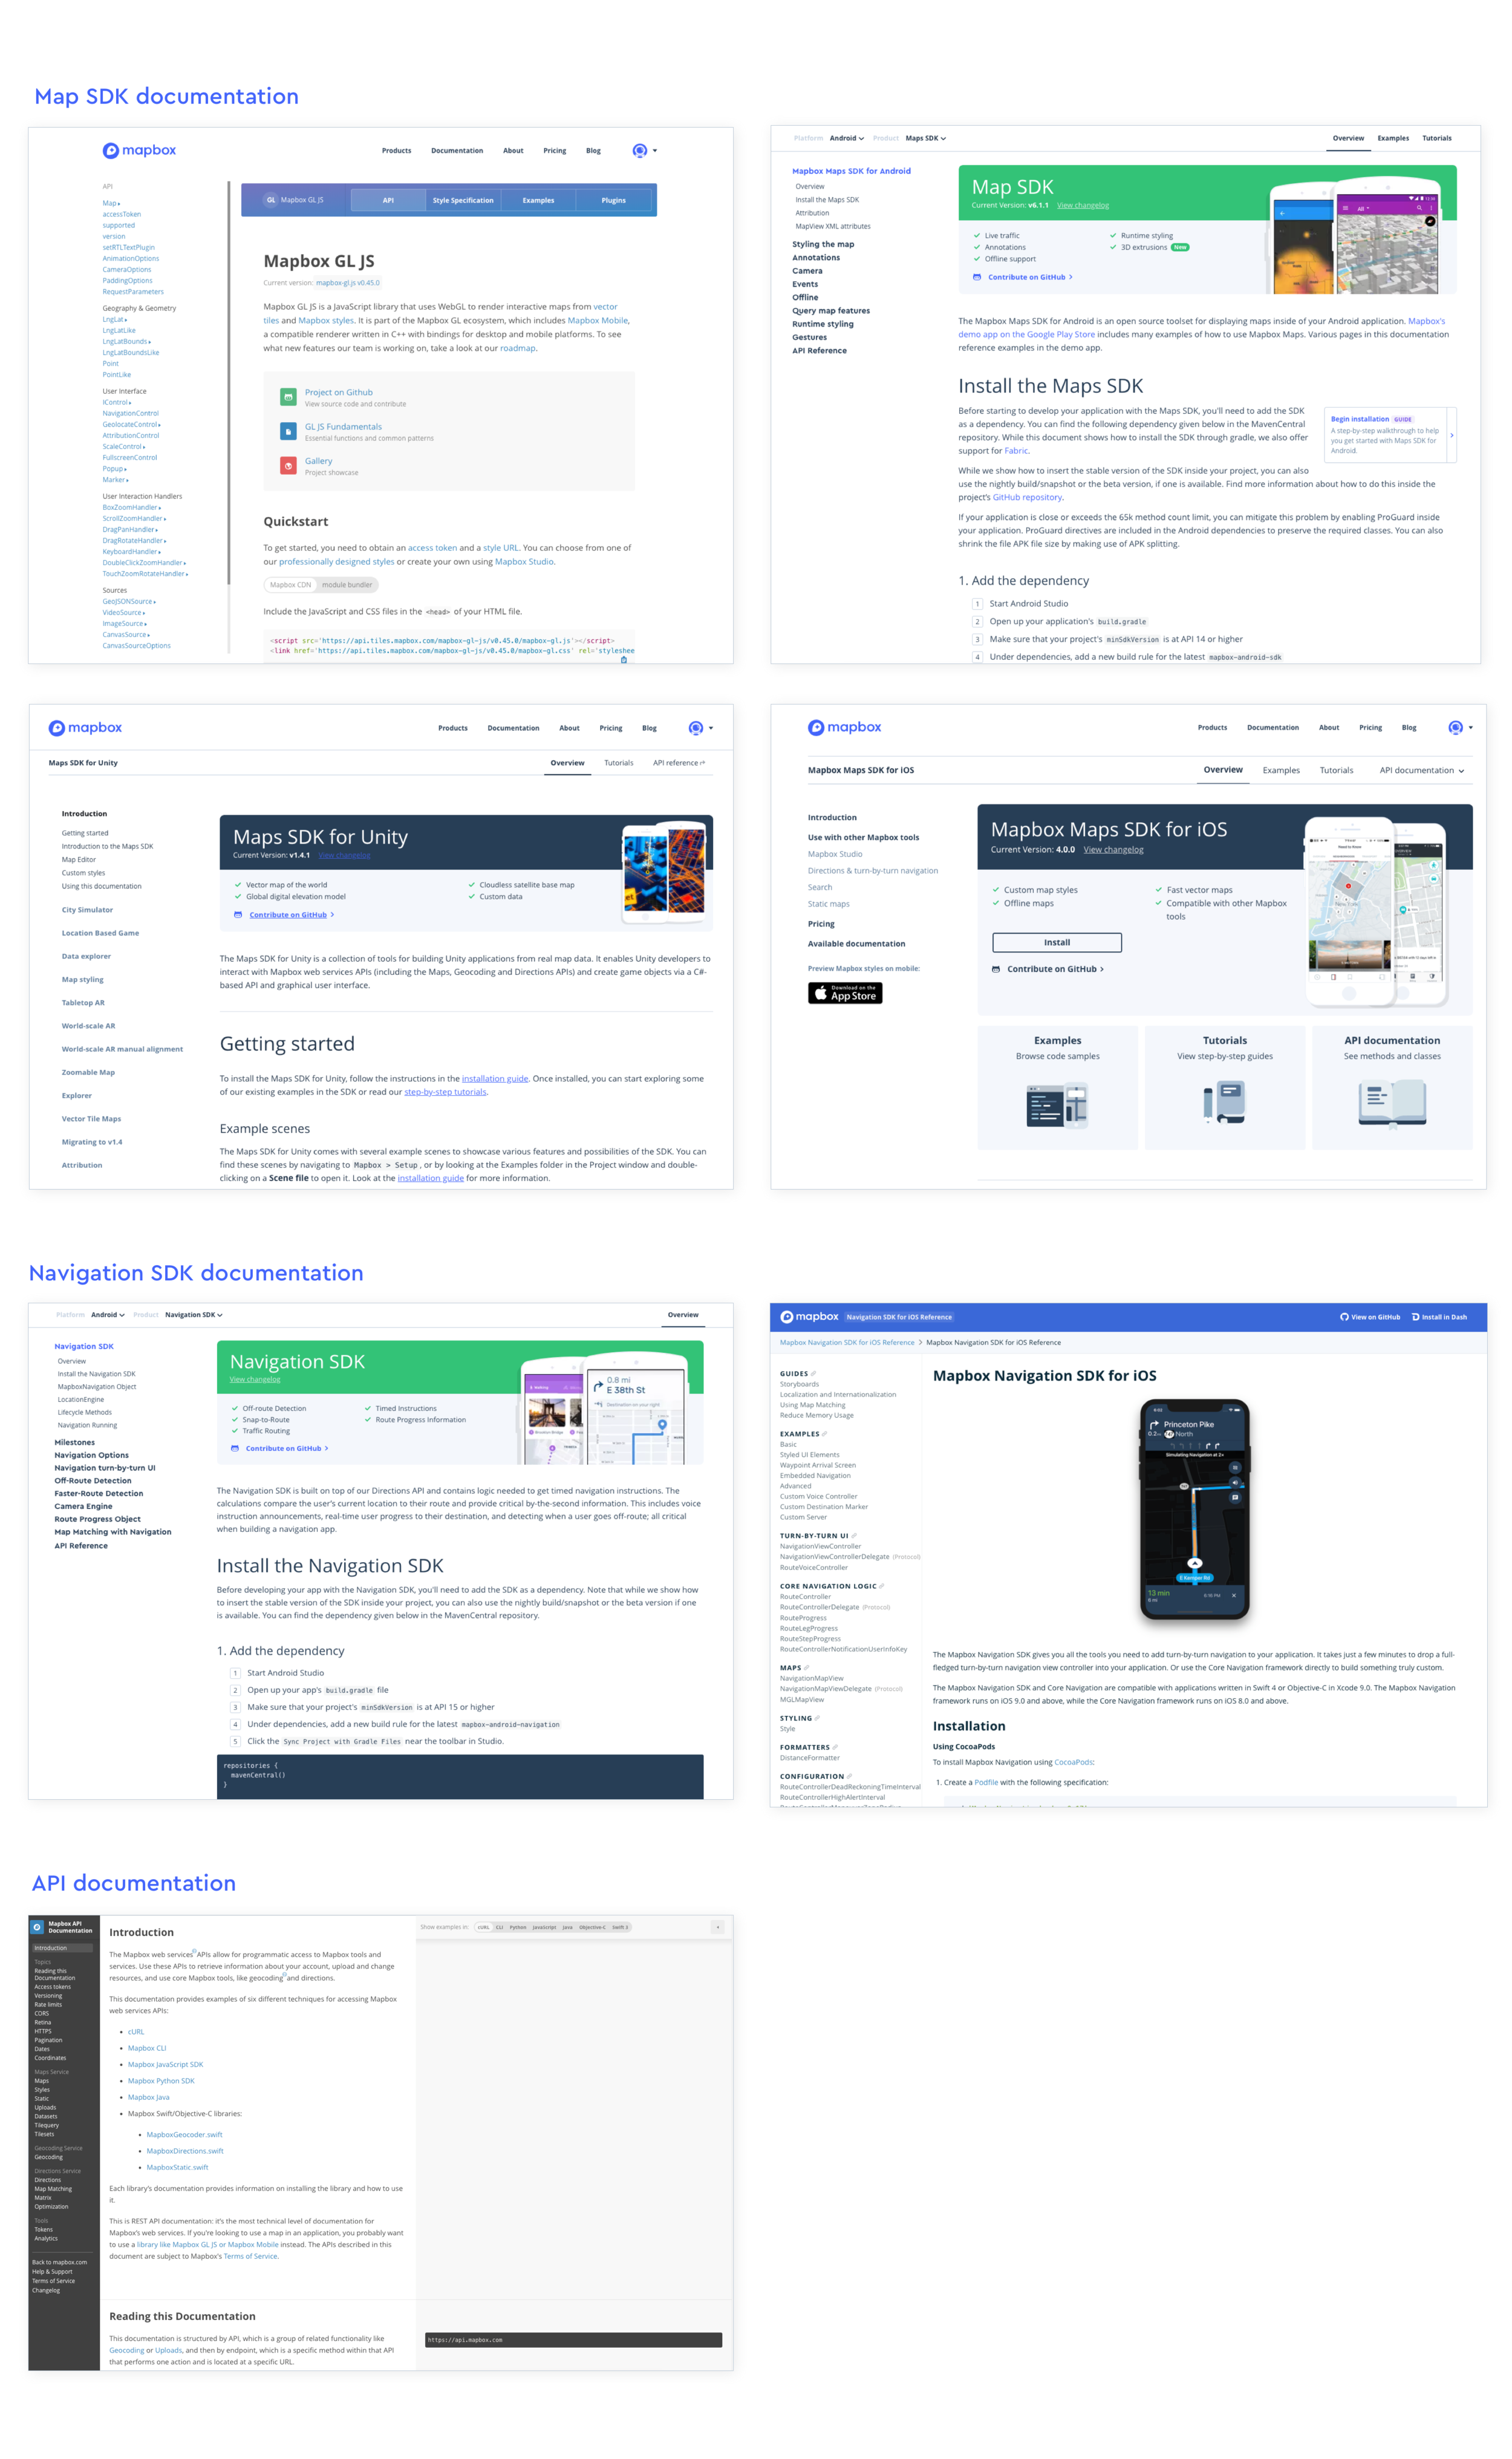 The variety of styles used just for Mapbox documentation pages